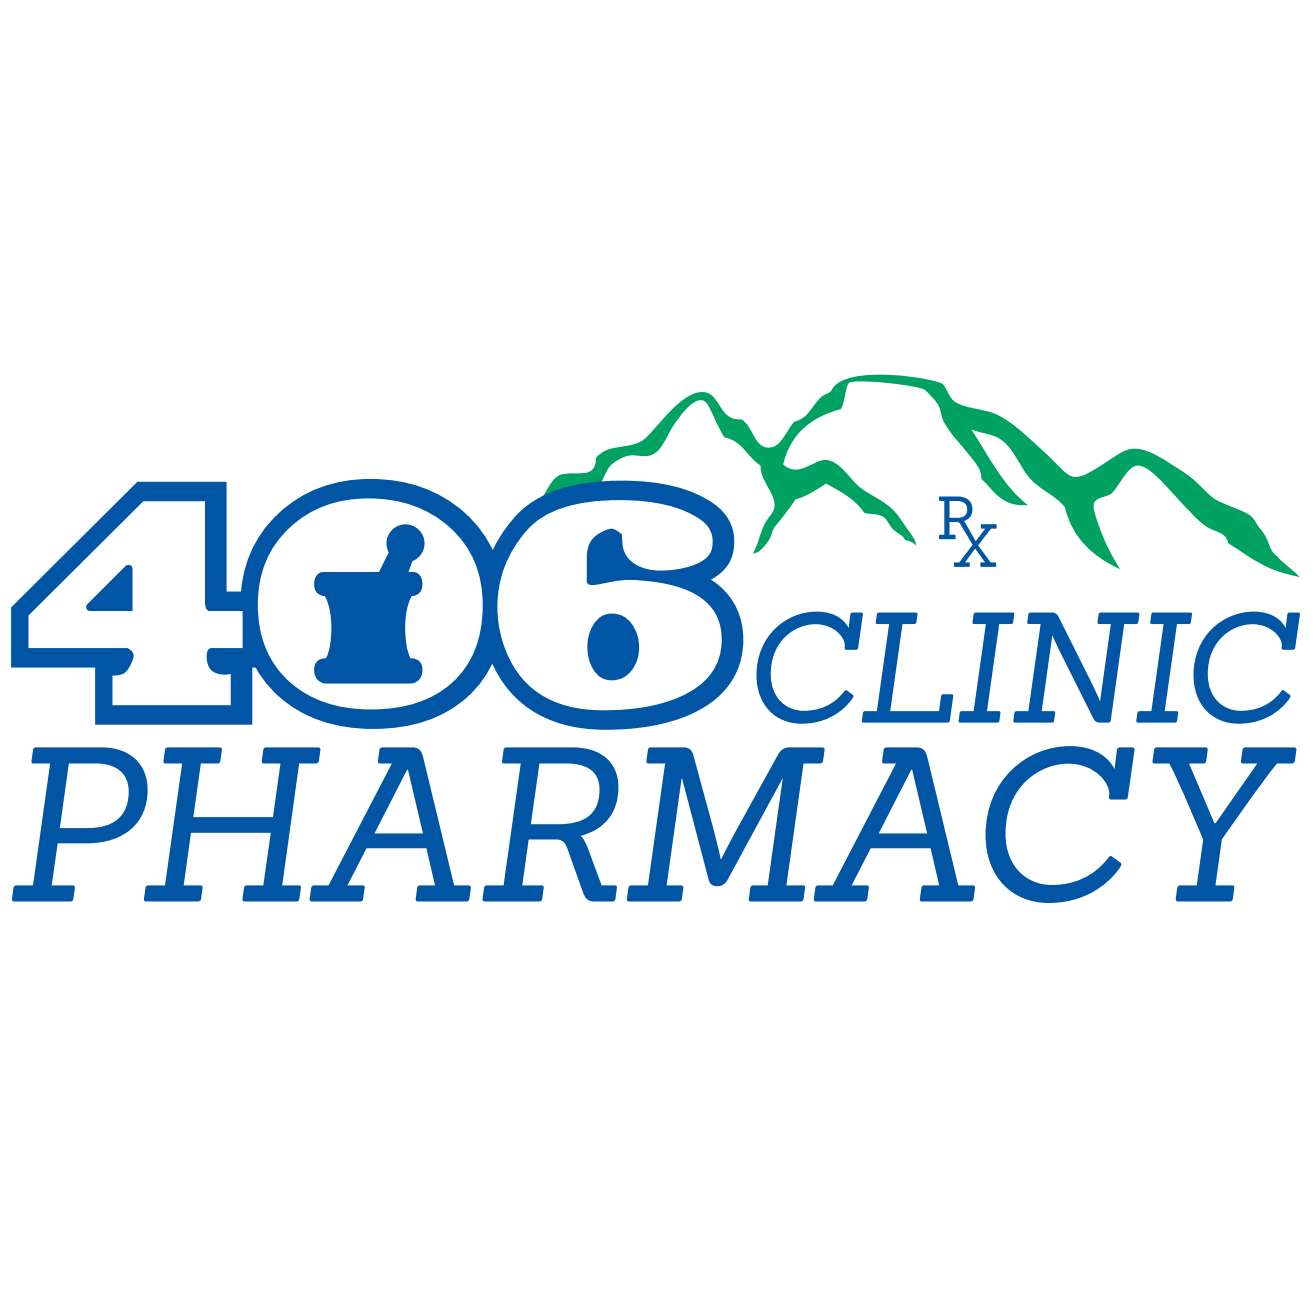 406 Clinic Pharmacy